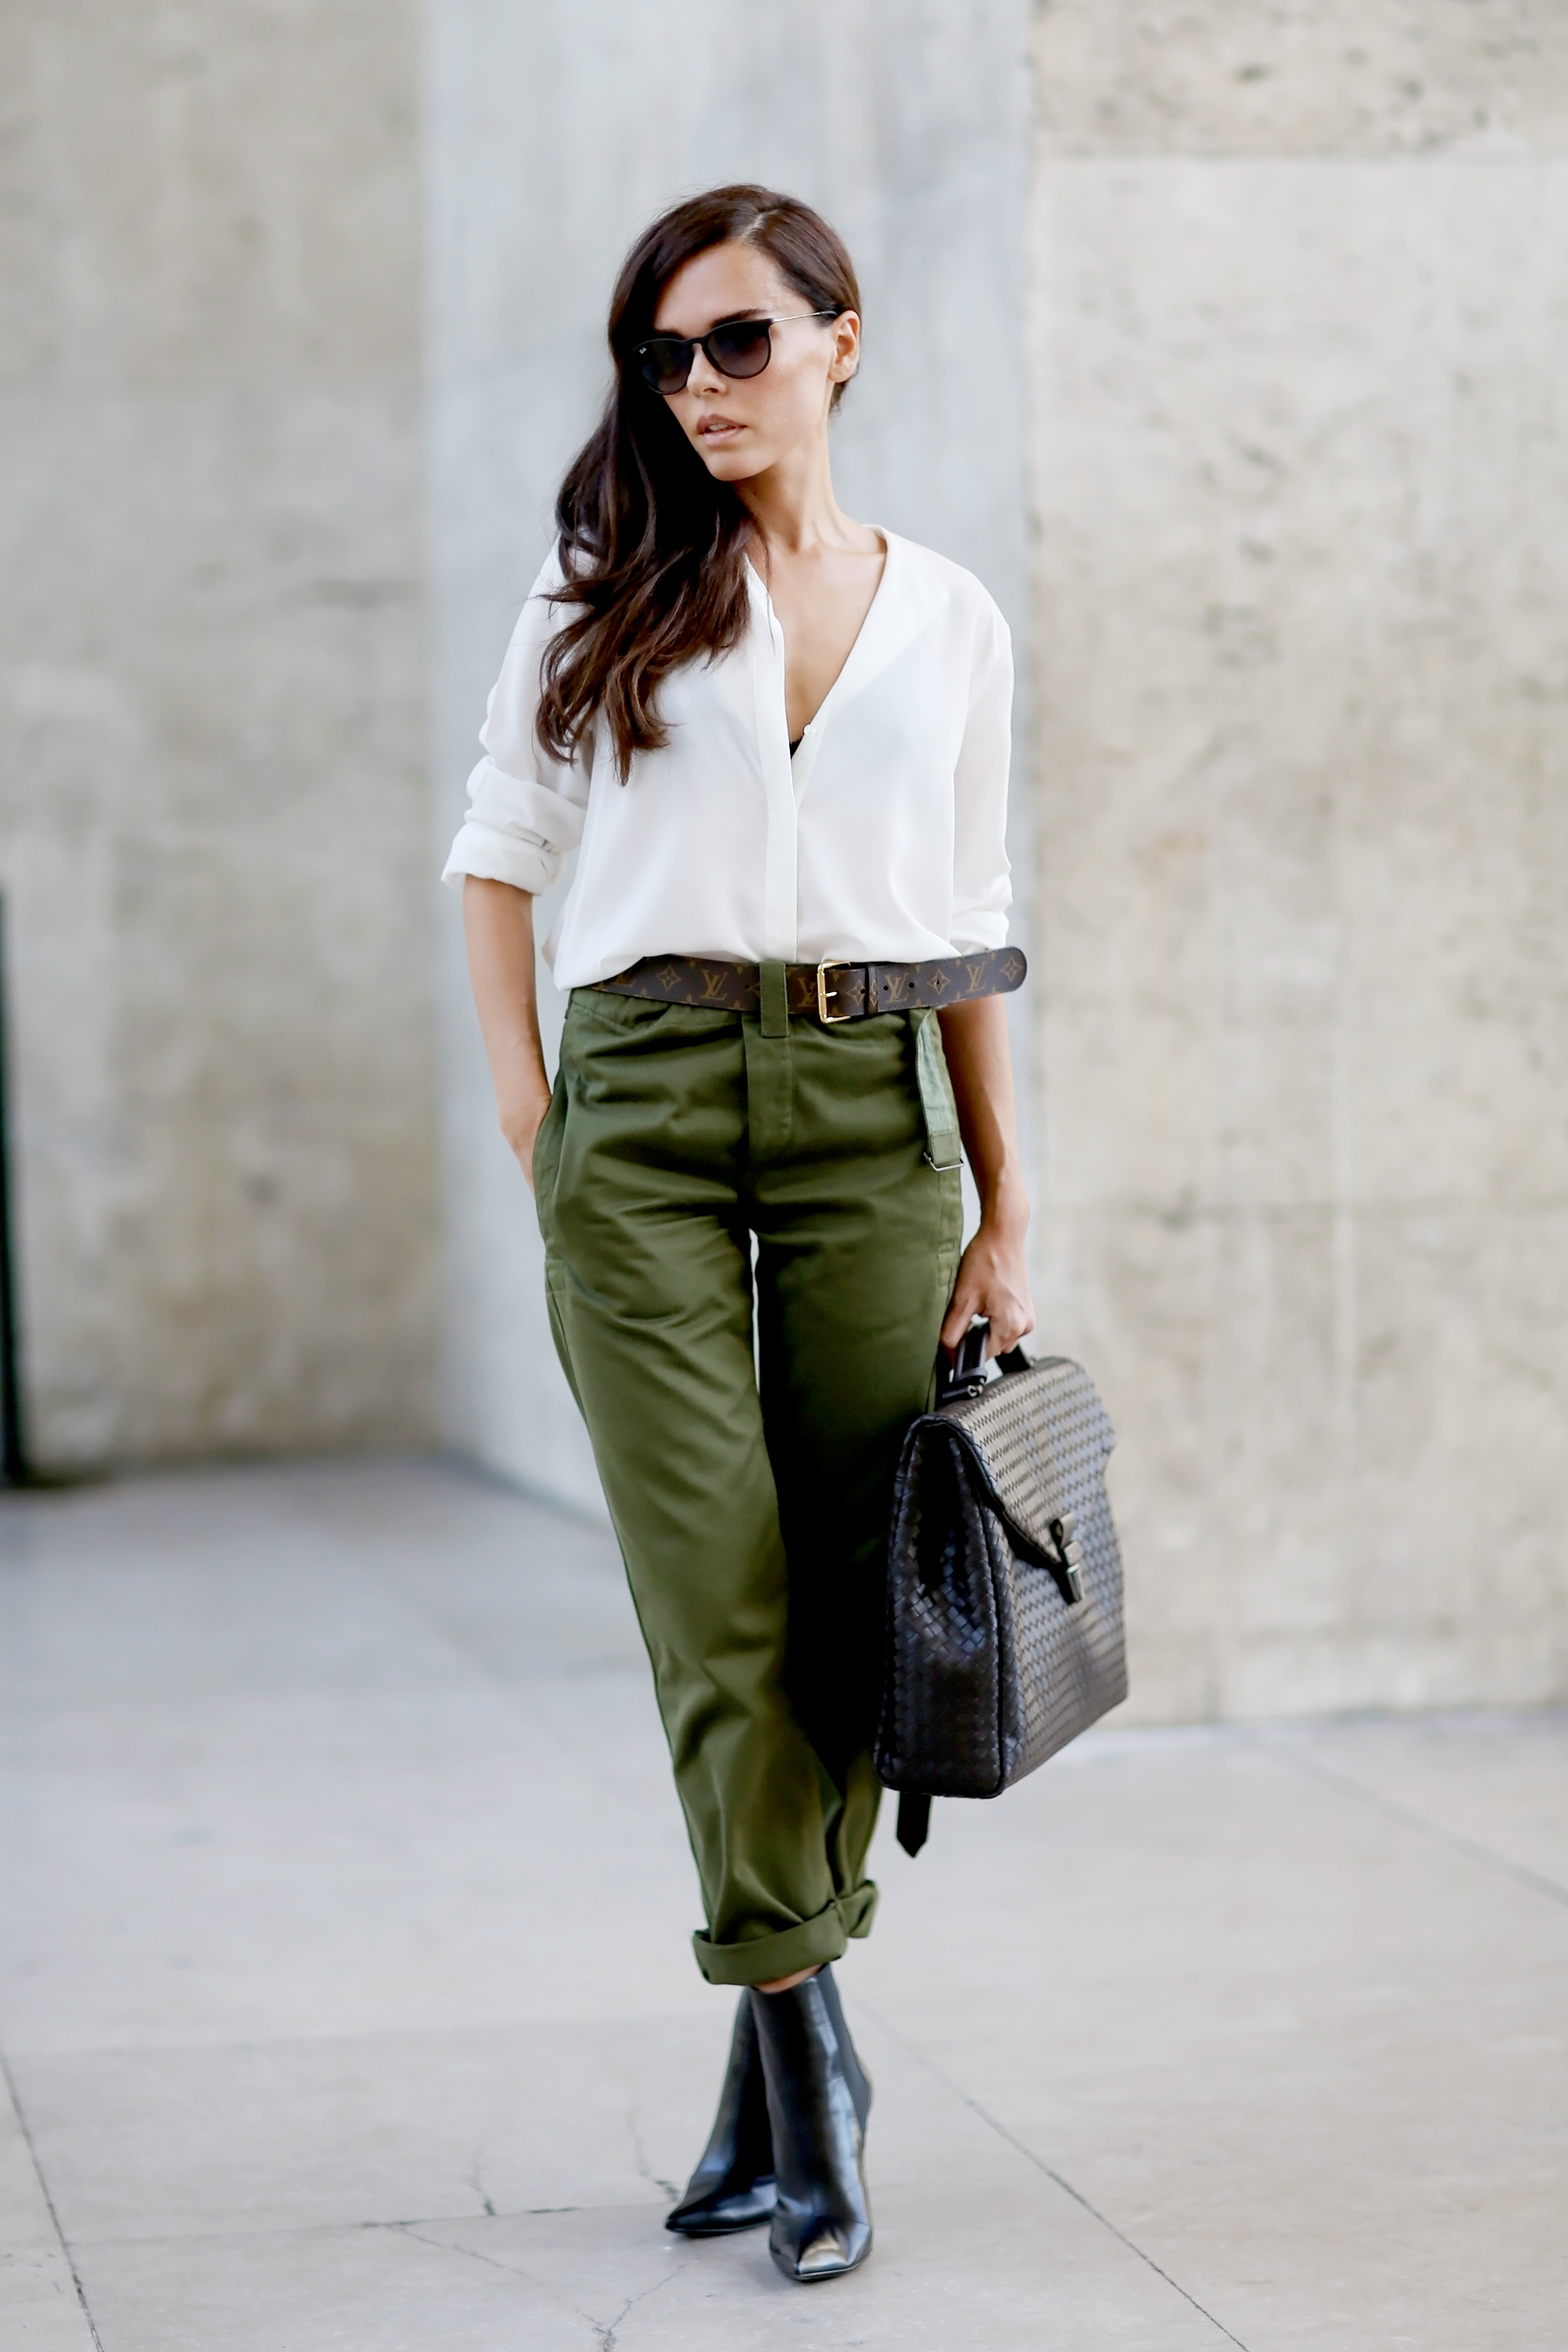 Jessie Bush is wearing a khaki green army trousers accessorised with a Louis Vuitton belt